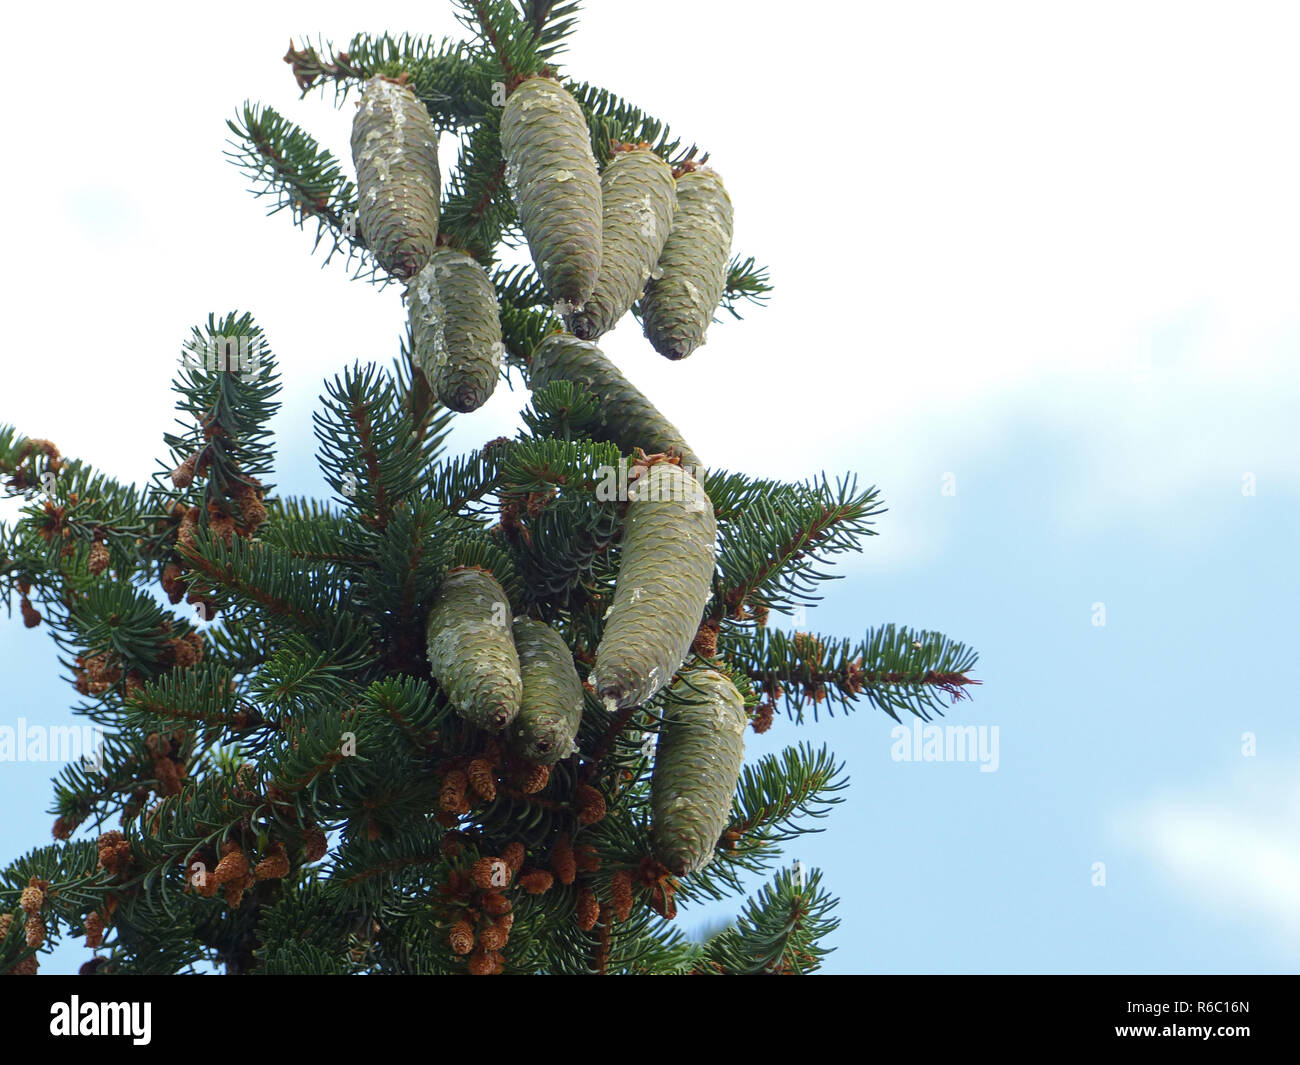 Serbian Spruce, Tree Top With Old And New Cones - Stock Image